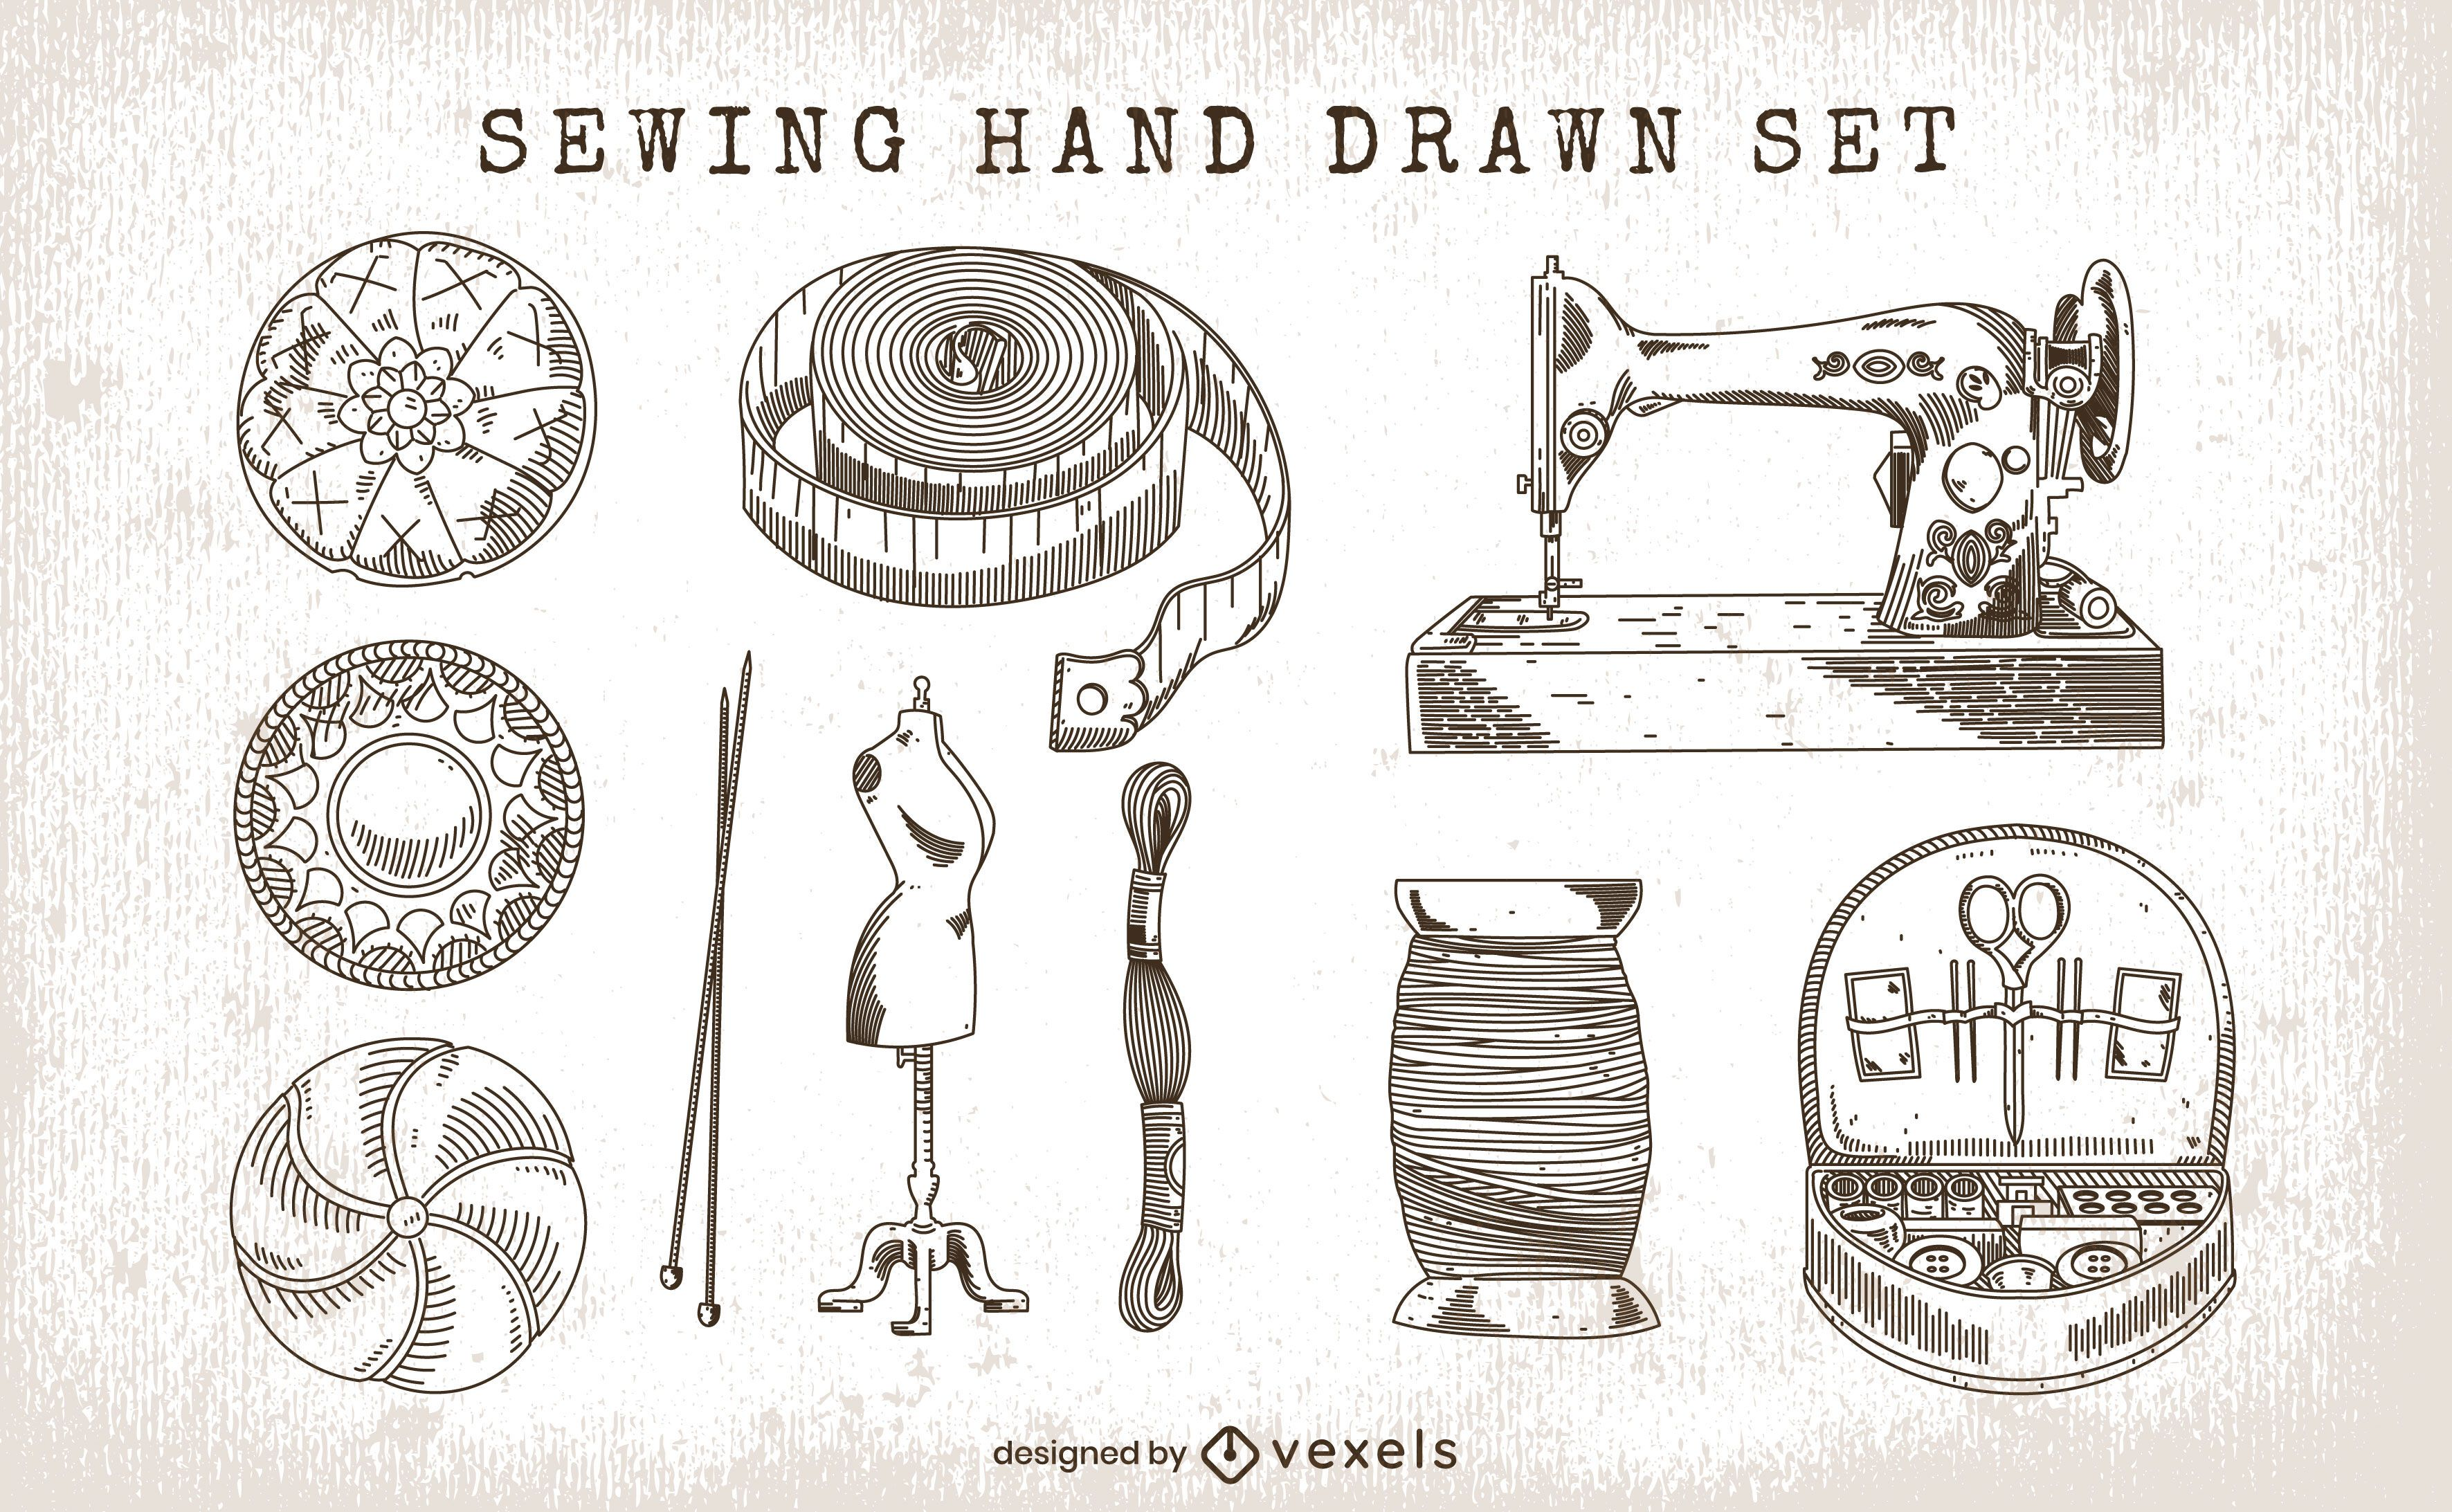 Sewing set of hand drawn elements